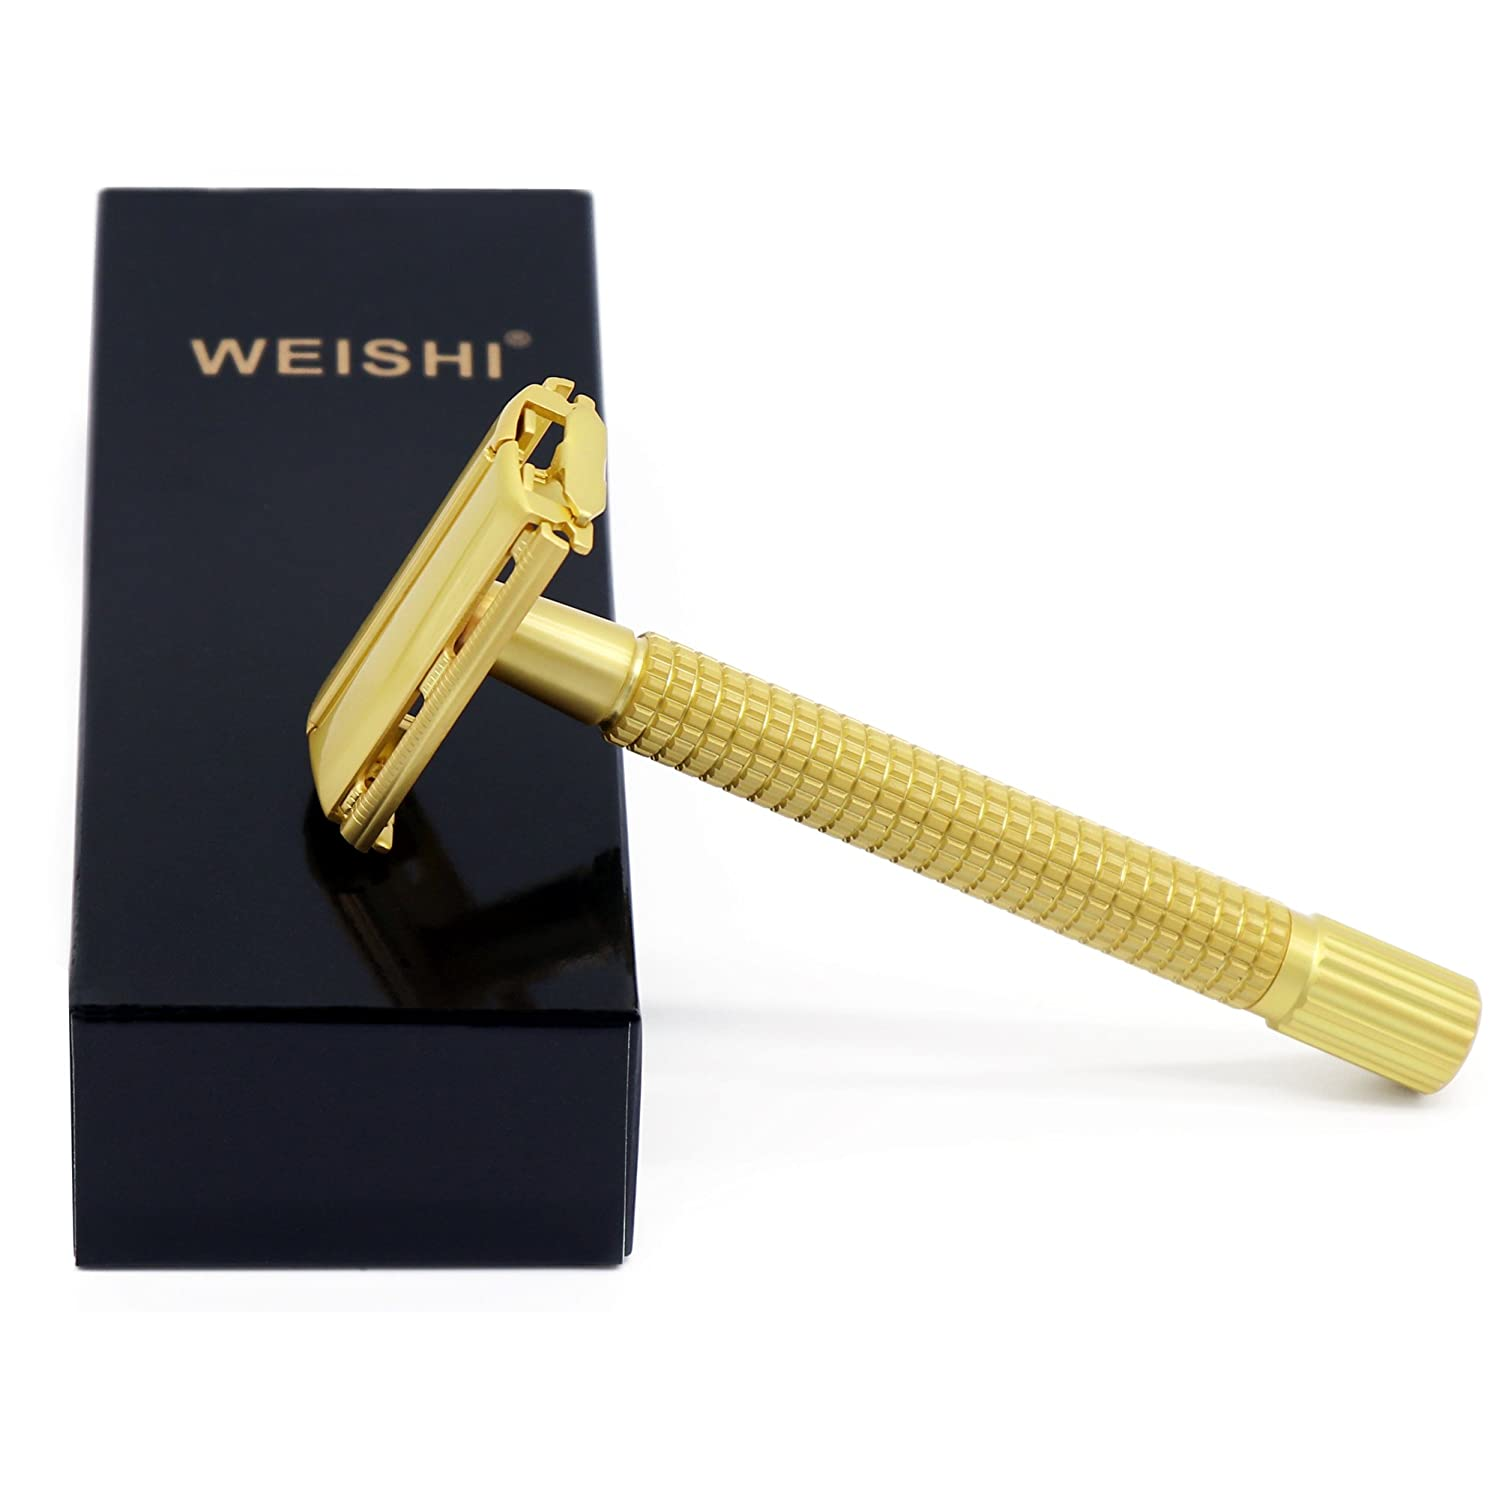 WEISHI Matte Gold Color Long Handle Butterfly Open Double Edge Safety Razor Twist to Open Shaver